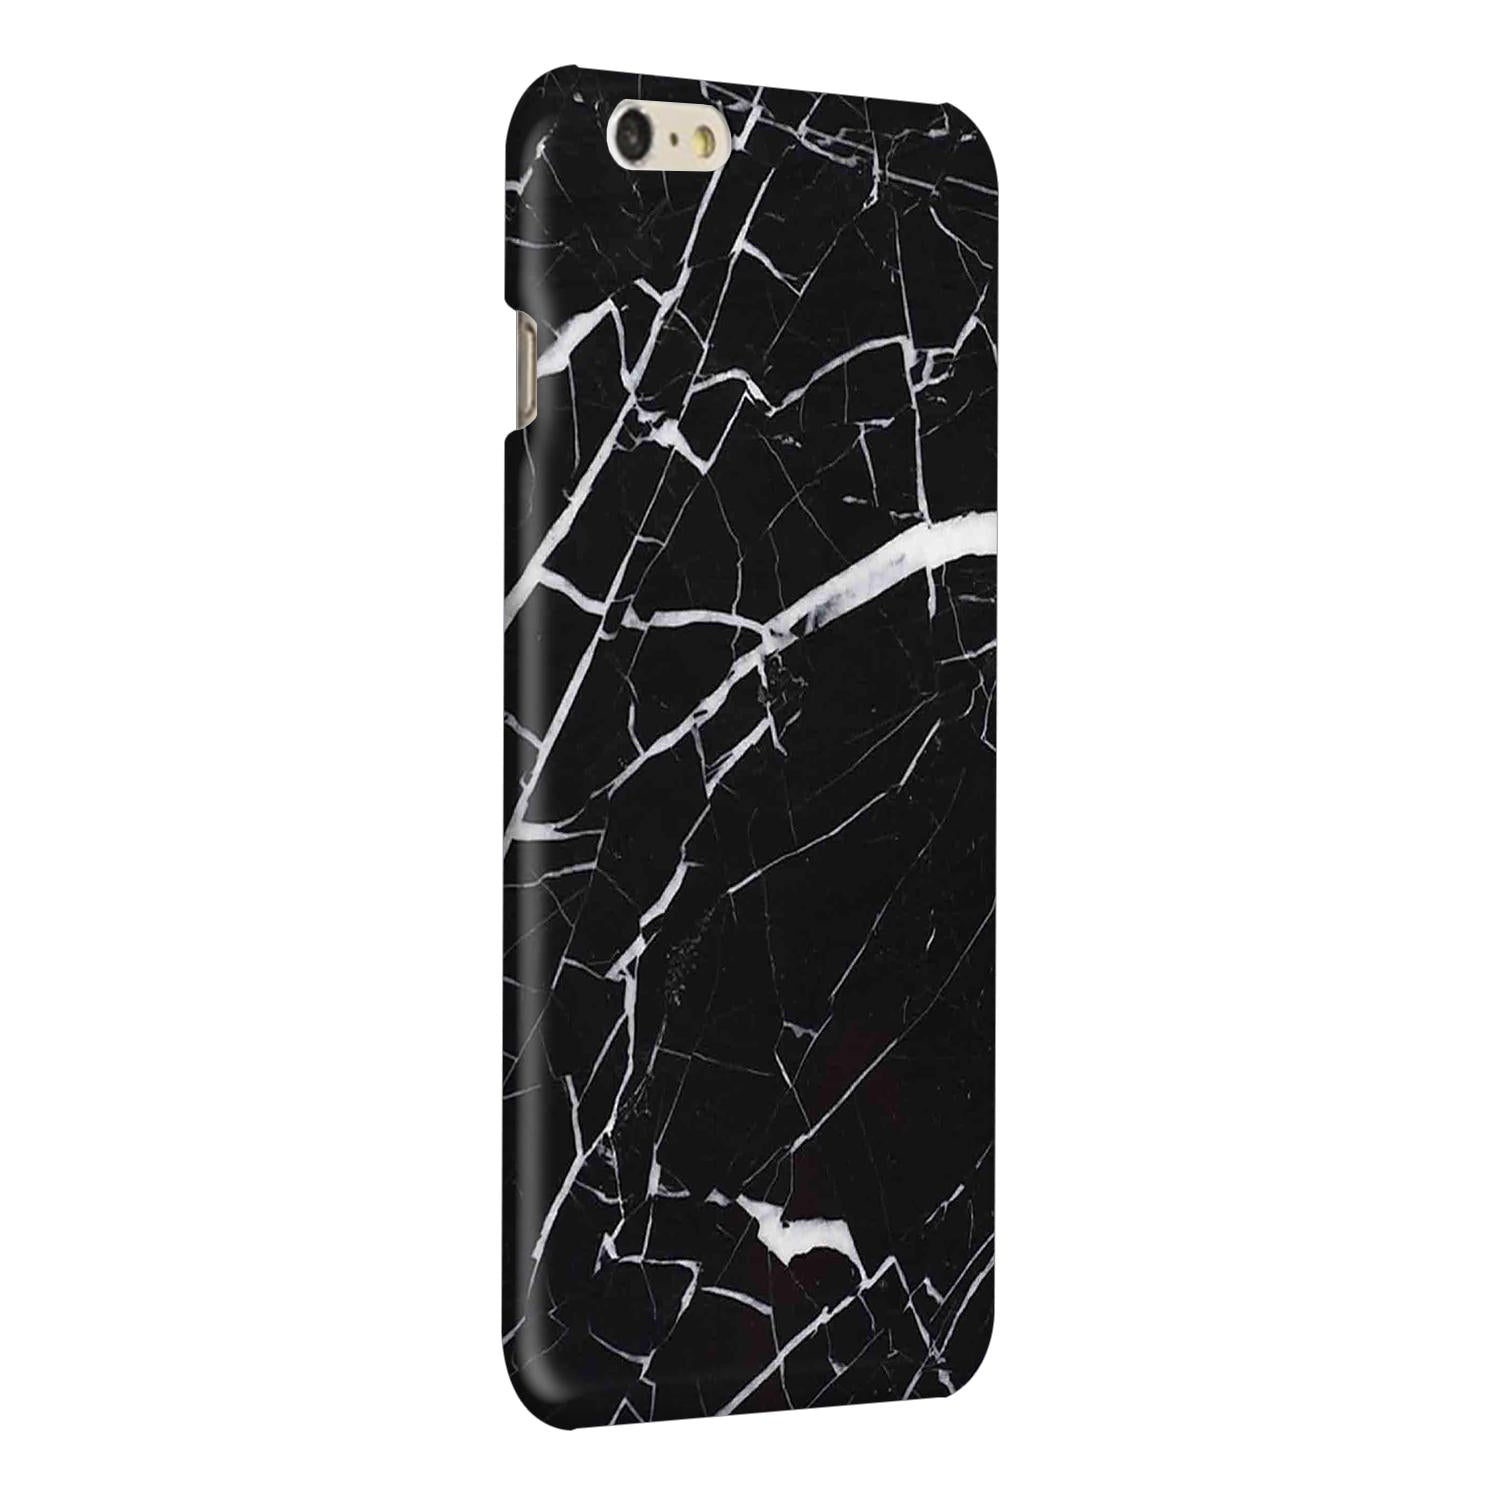 Dark Marble iPhone 6 Plus Mobile Cover Case - MADANYU